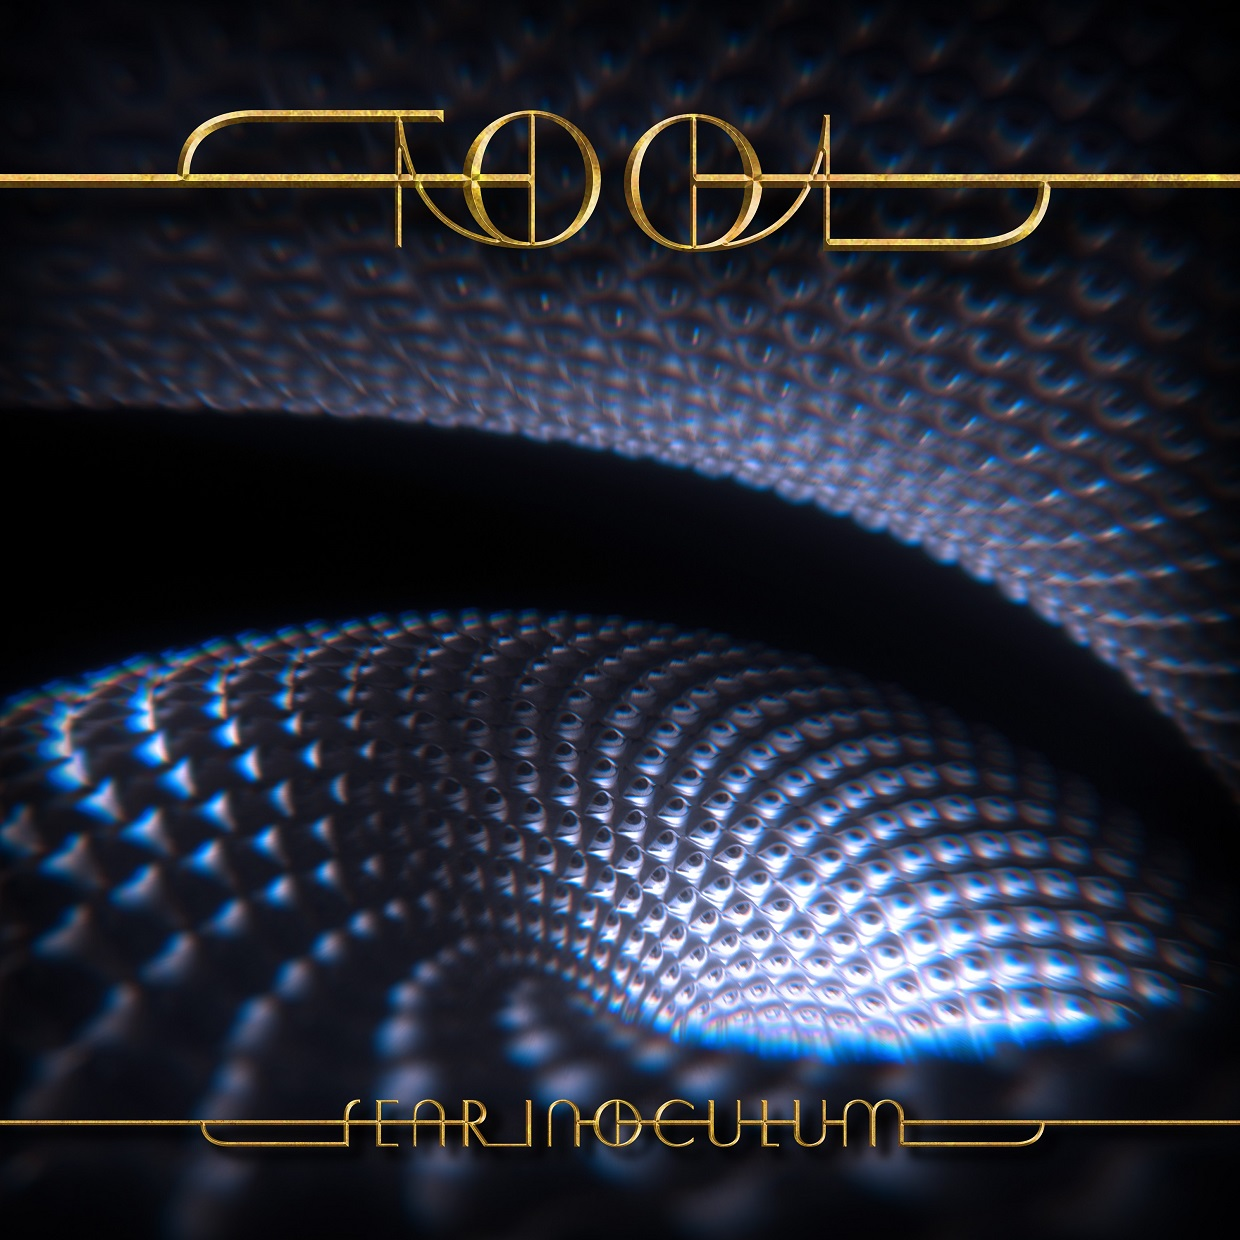 tool fear inoculum album 2019 cover artwork